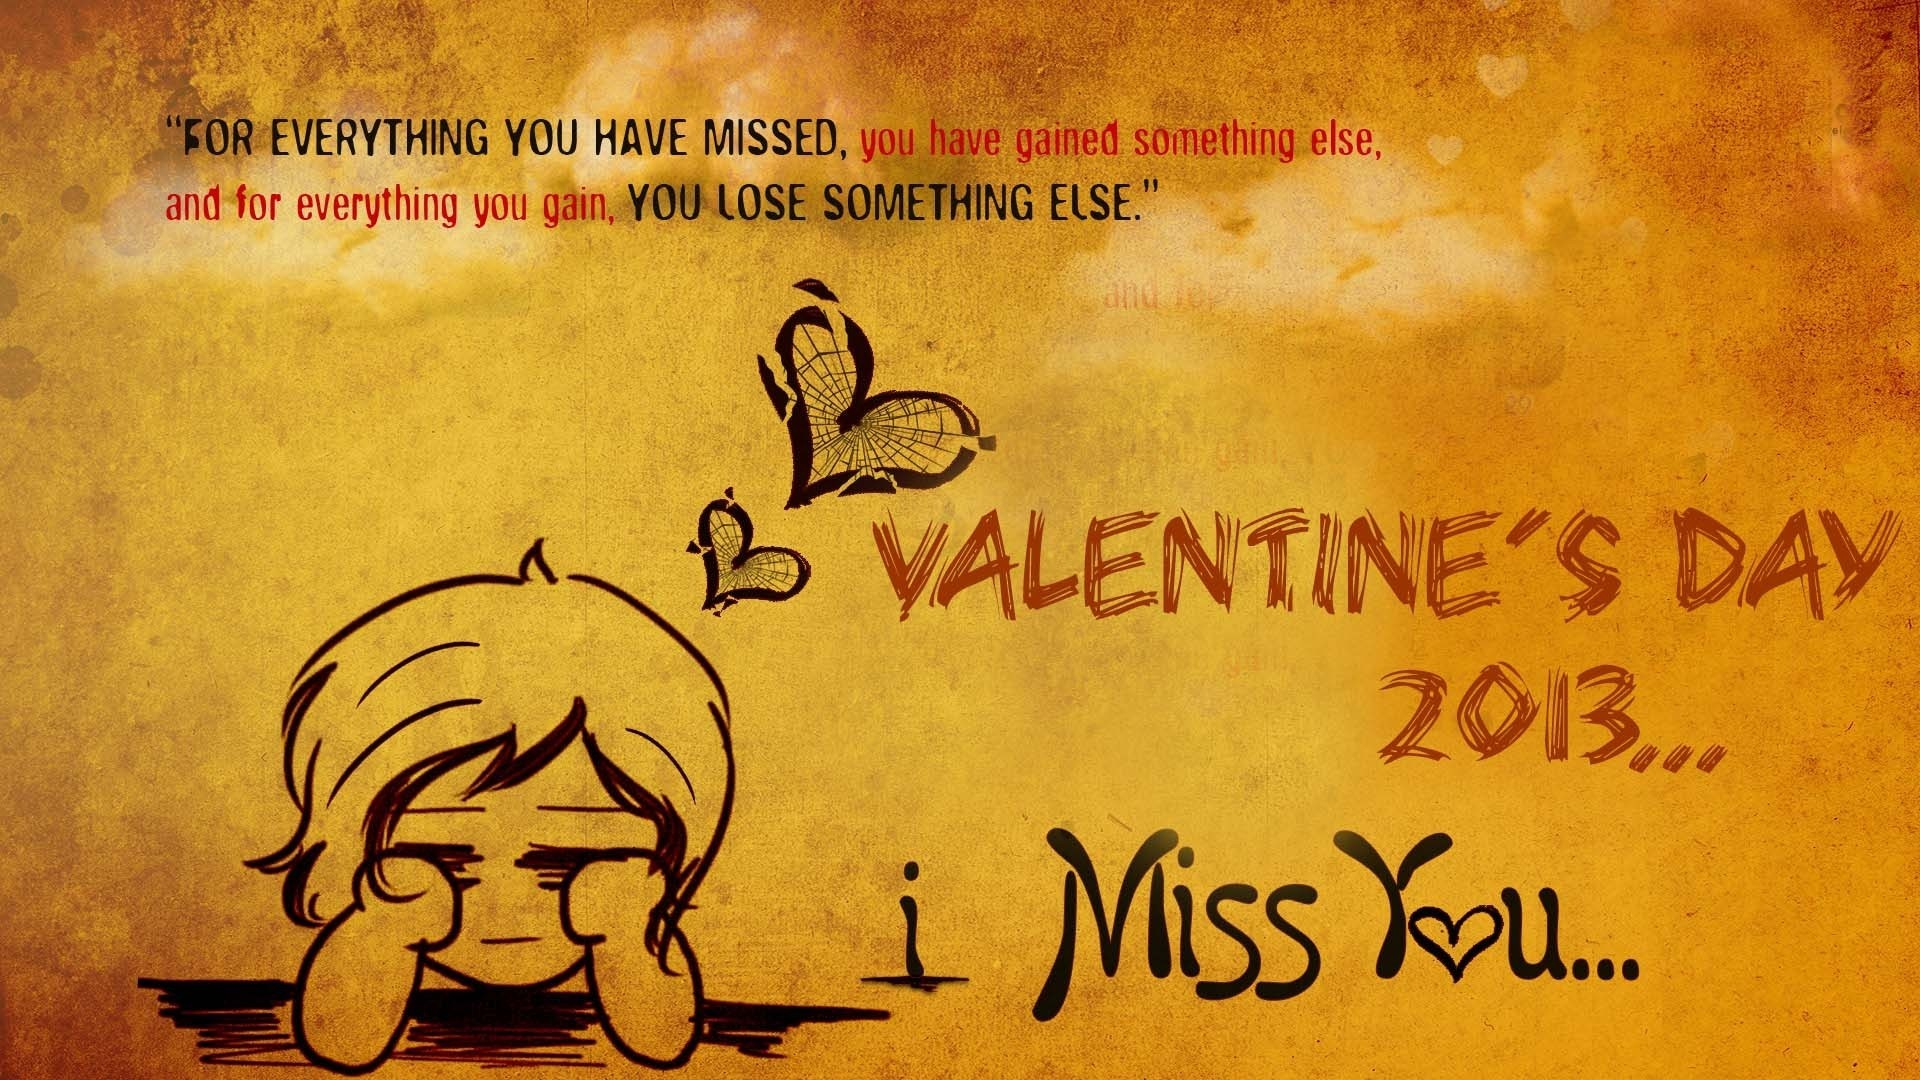 1920x1080 Valentines Day 2013 Quotes HD Wallpaper